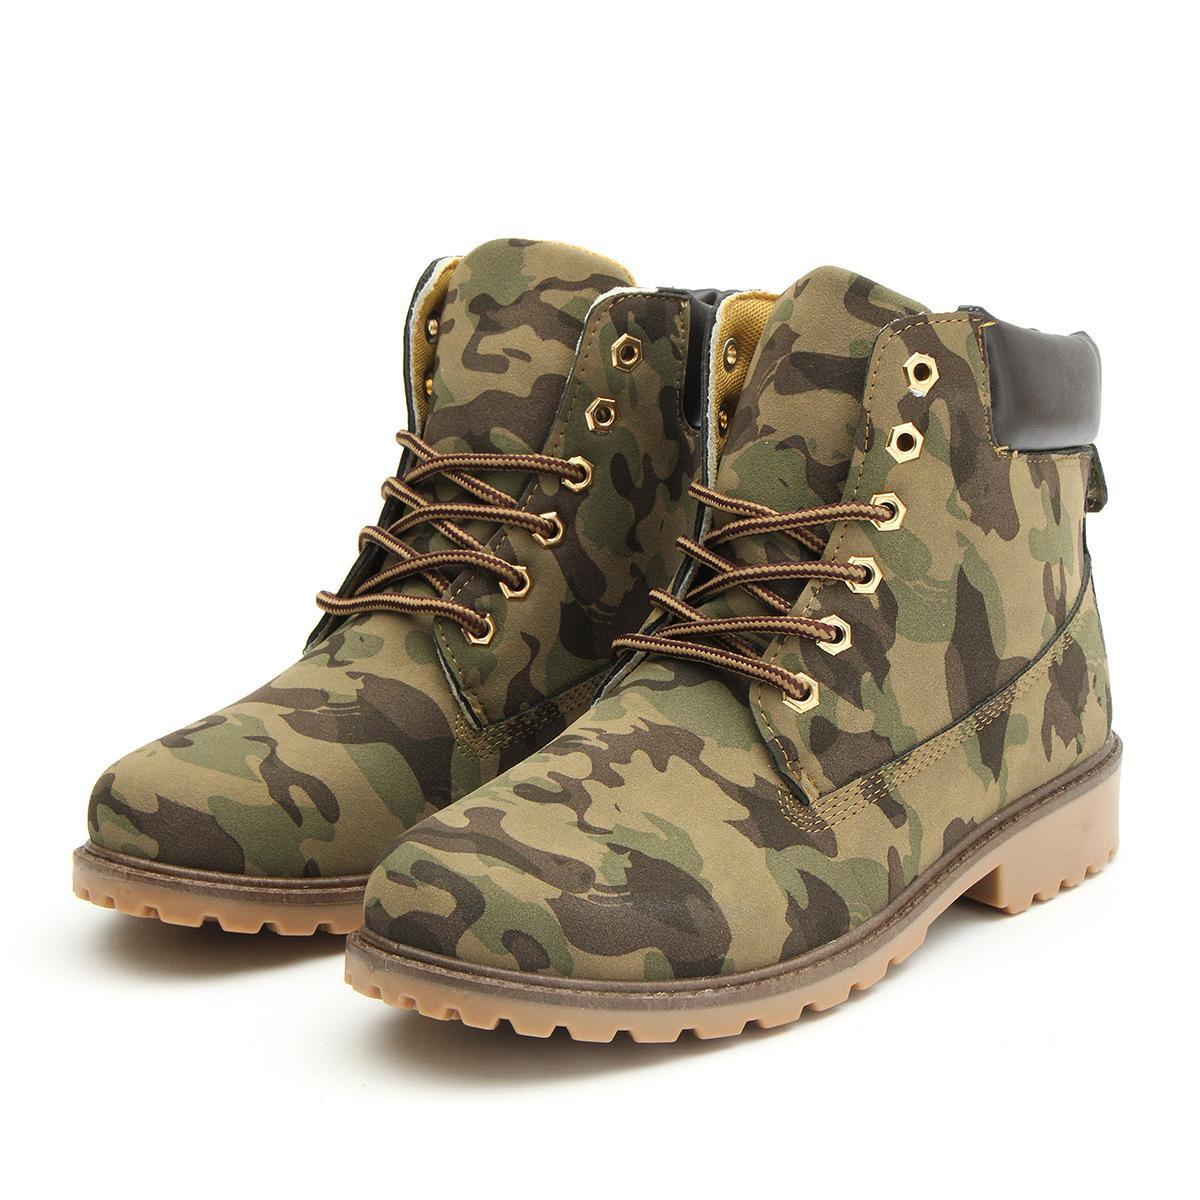 de799a1c271 New Work Boots Women's Winter Leather Boot Lace up Outdoor Waterproof Snow  Boot